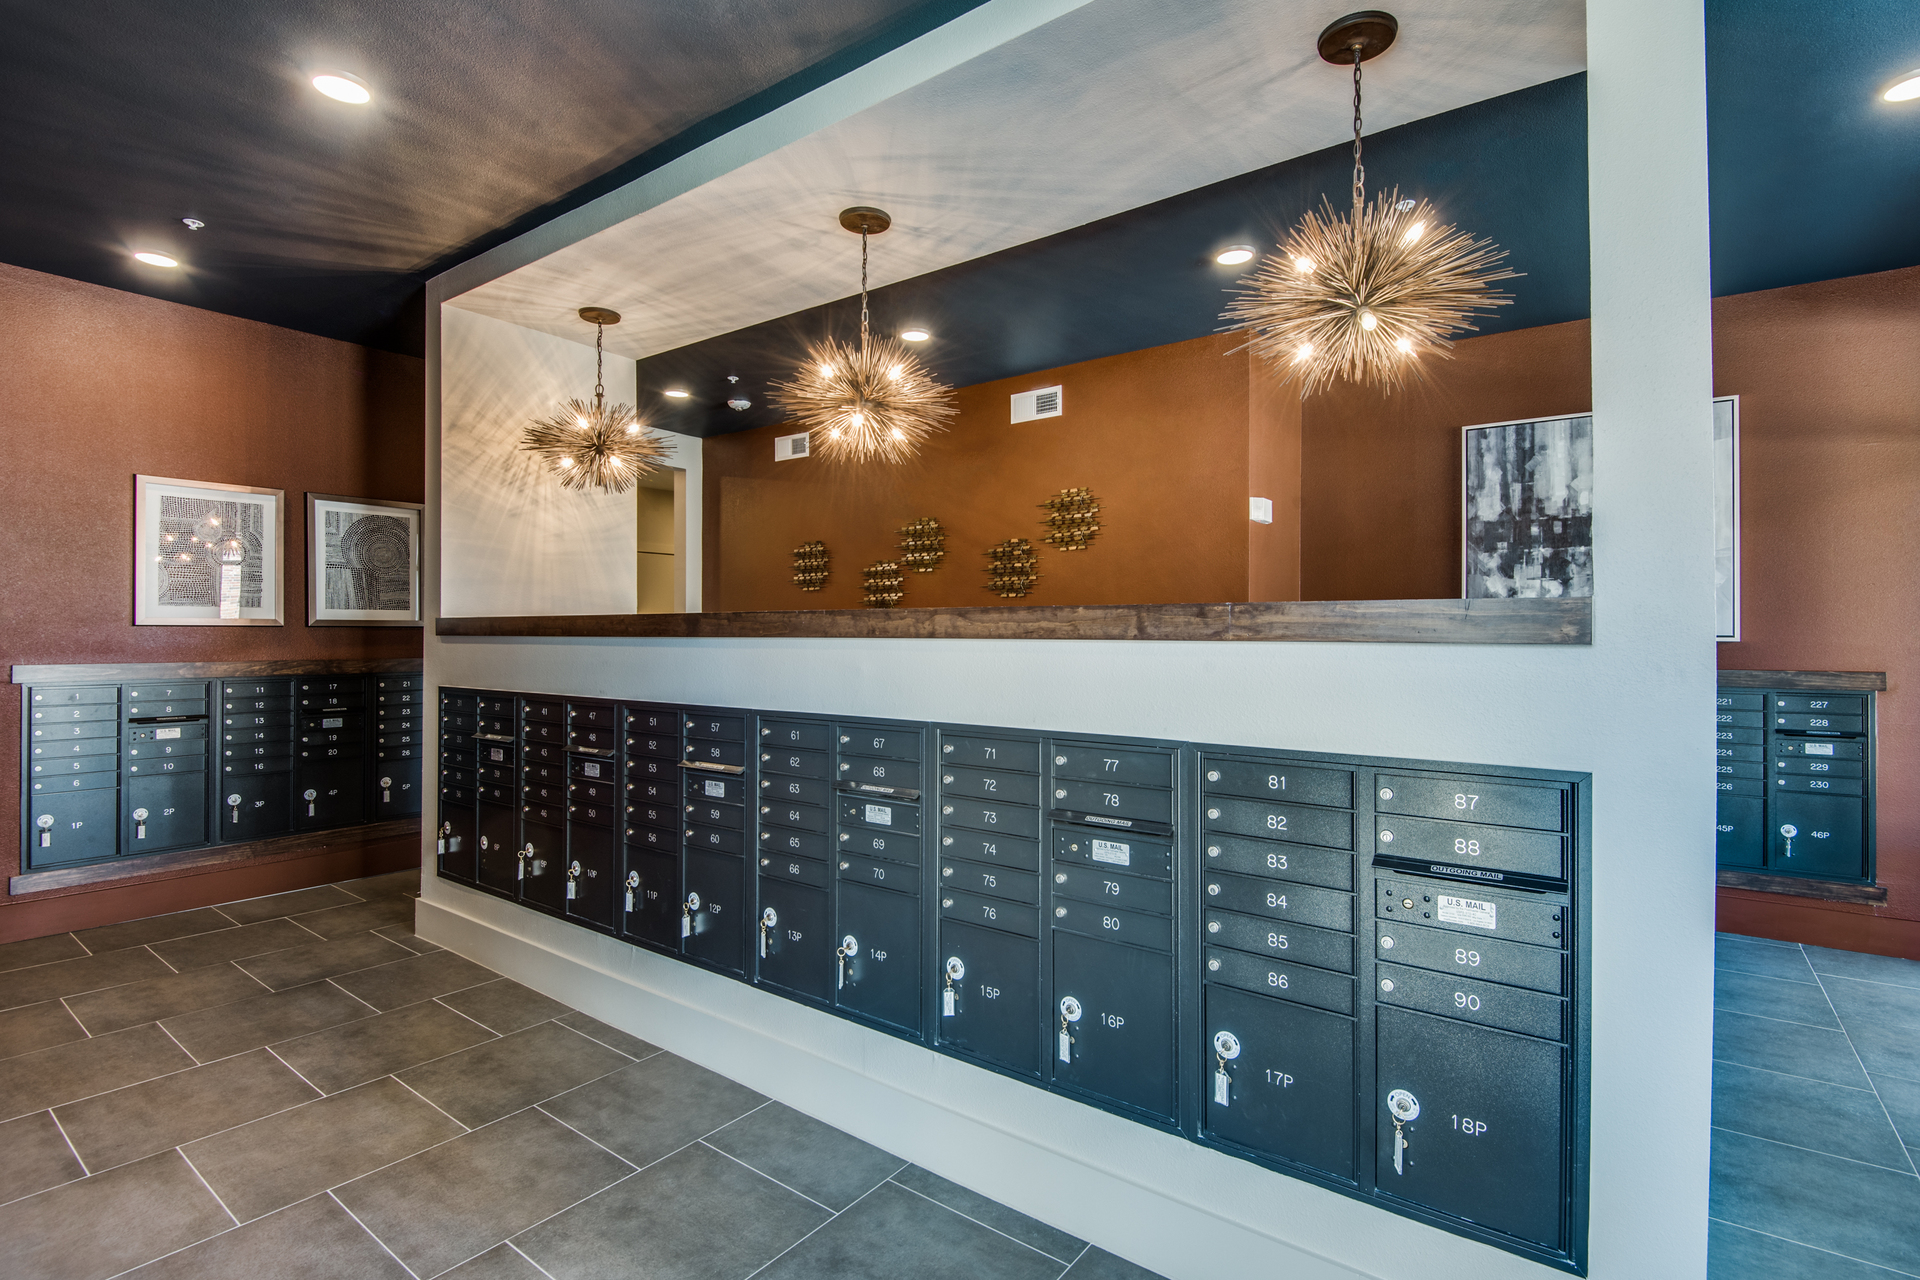 Beautiful mail center with stunning light fixtures for the residents at Hillstone River Walk, by Hensley Lamkin Rachel, Inc.